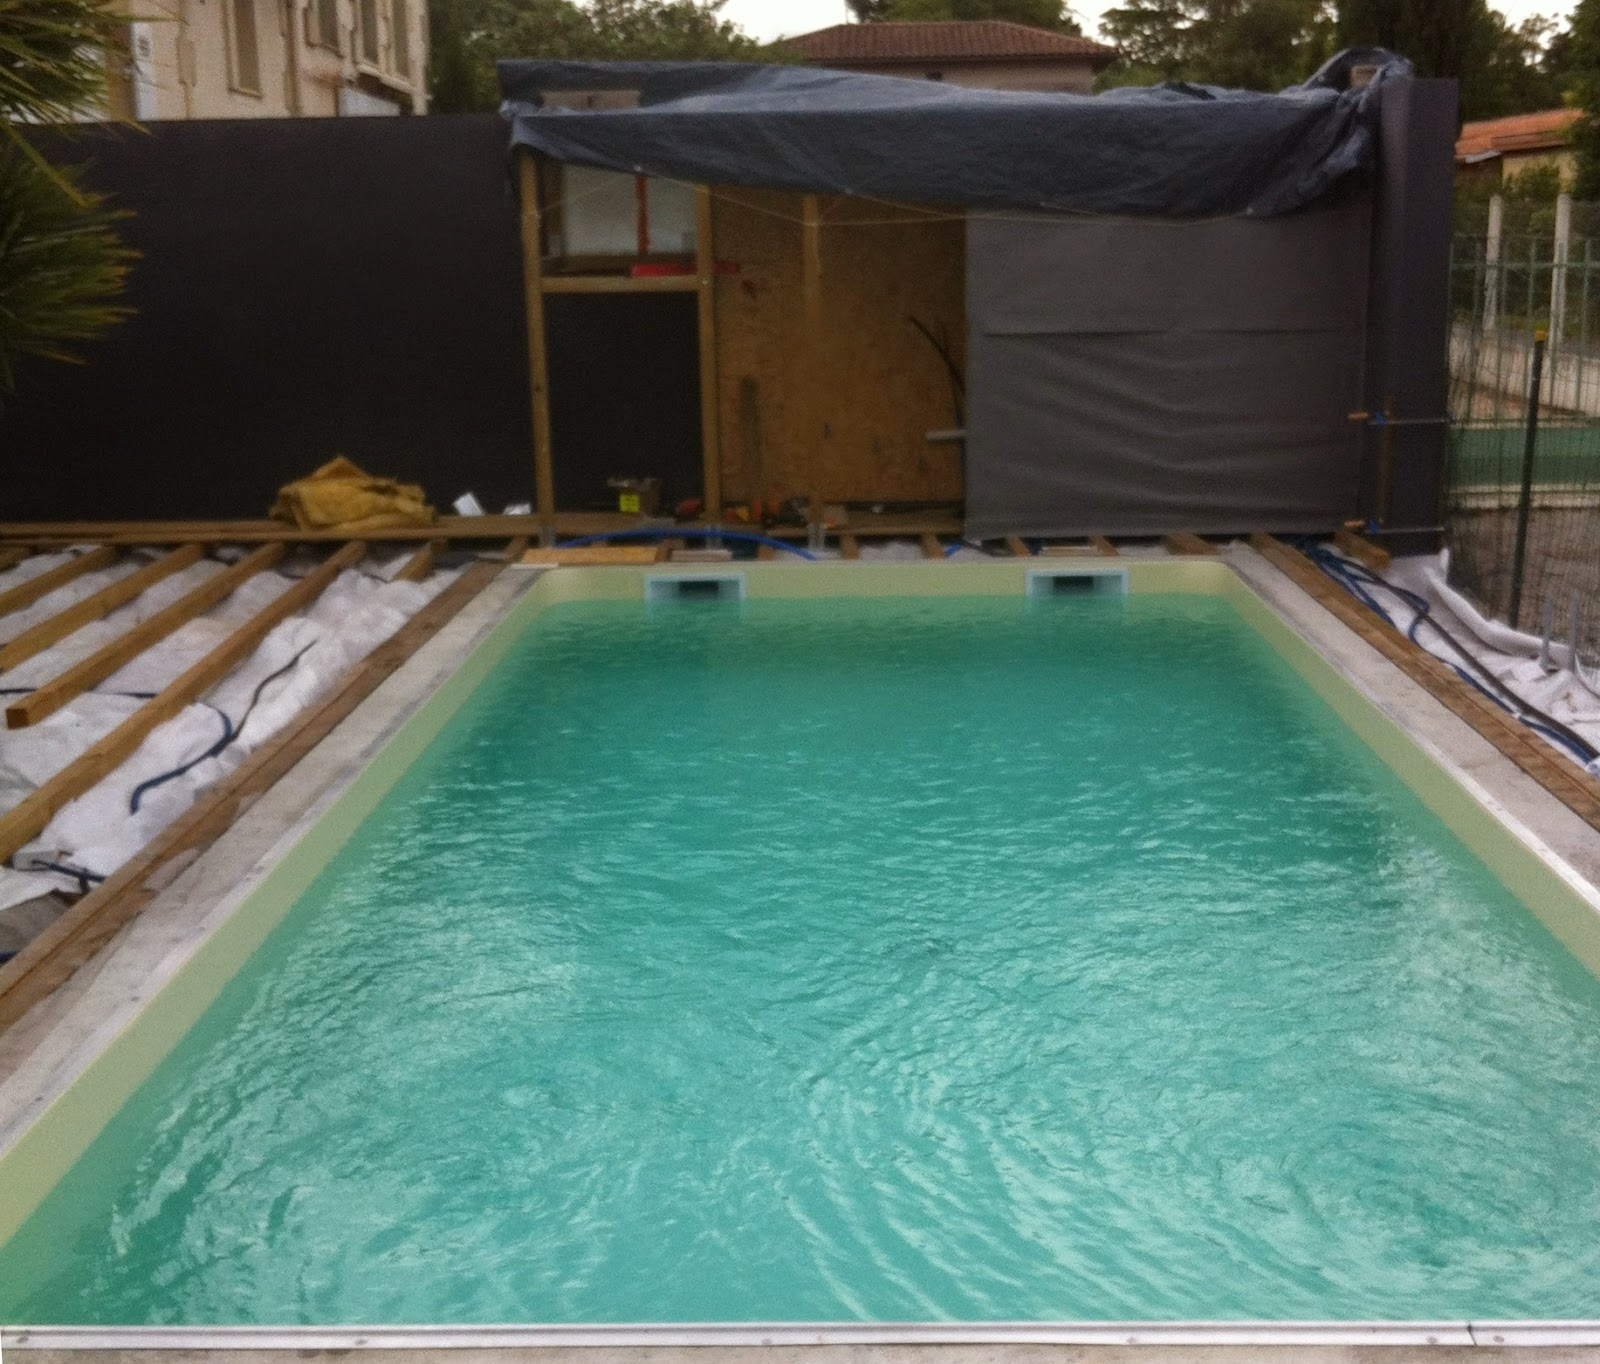 Projet tapes de construction d 39 une piscine en for Construction de piscine